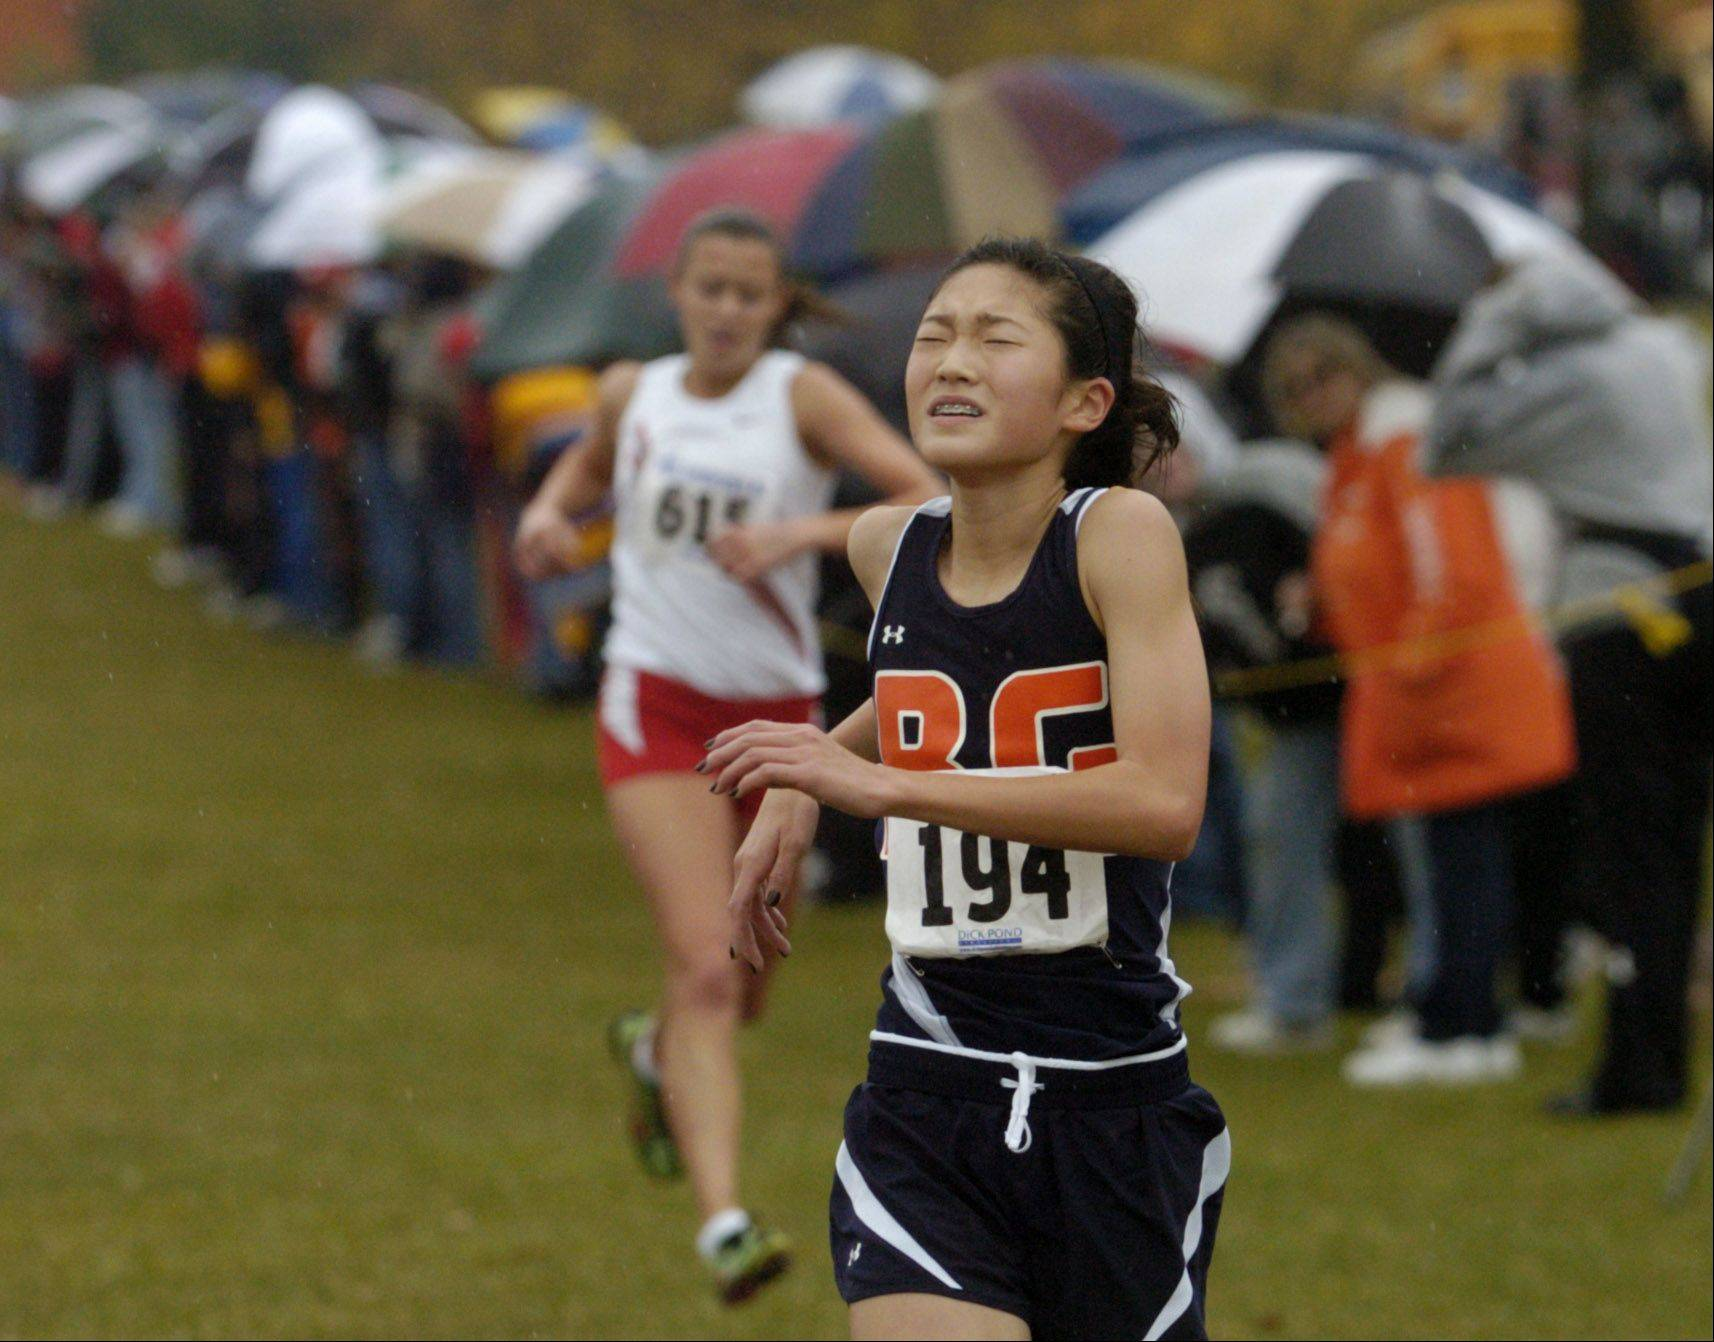 Kaitlyn Ko of Buffalo Grove takes third place, just ahead of Palatine's Tess Wasowicz, in the Mid-Suburban League girls cross country championship.